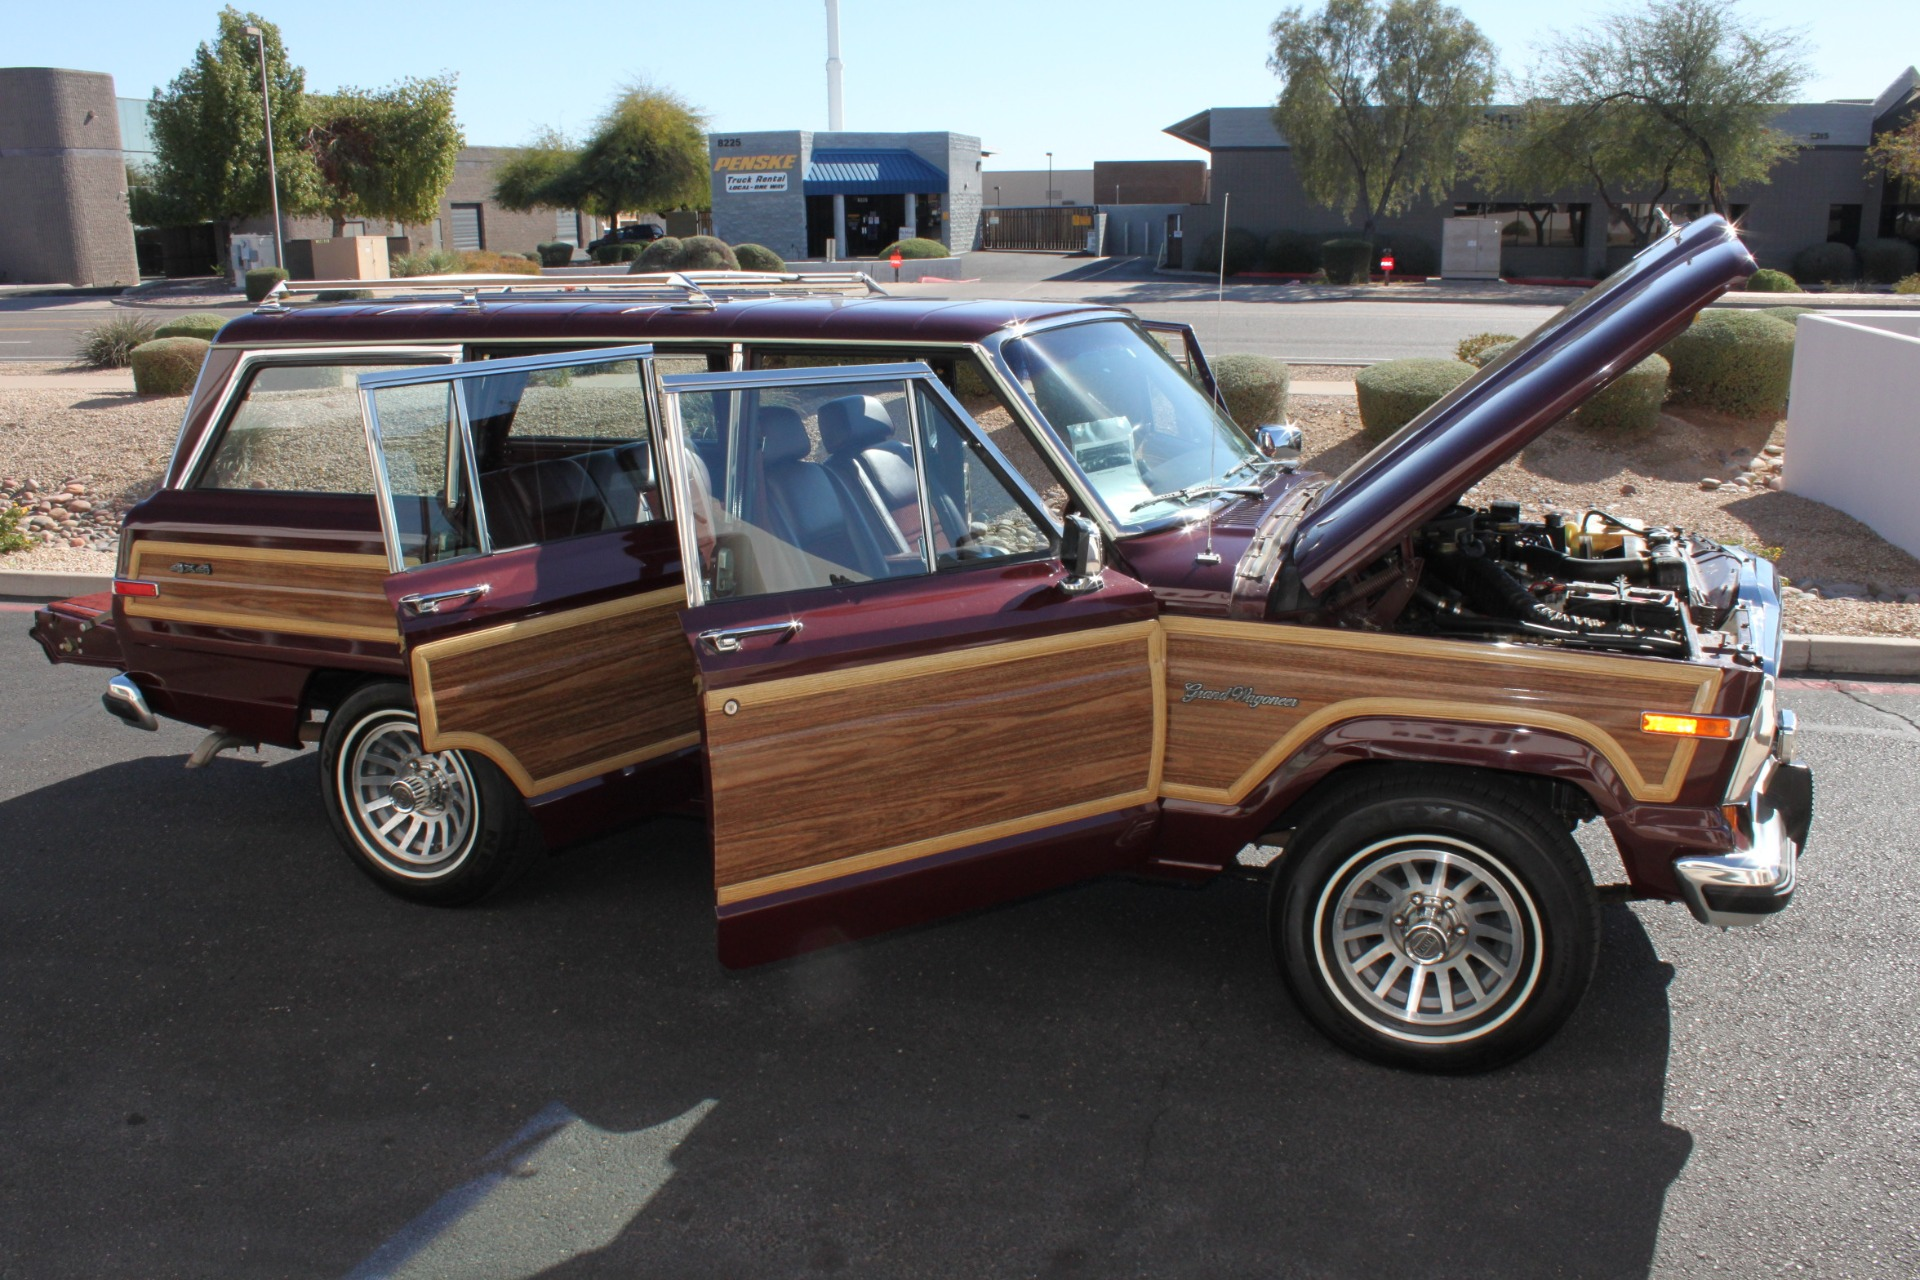 Used-1988-Jeep-Grand-Wagoneer-Chevelle